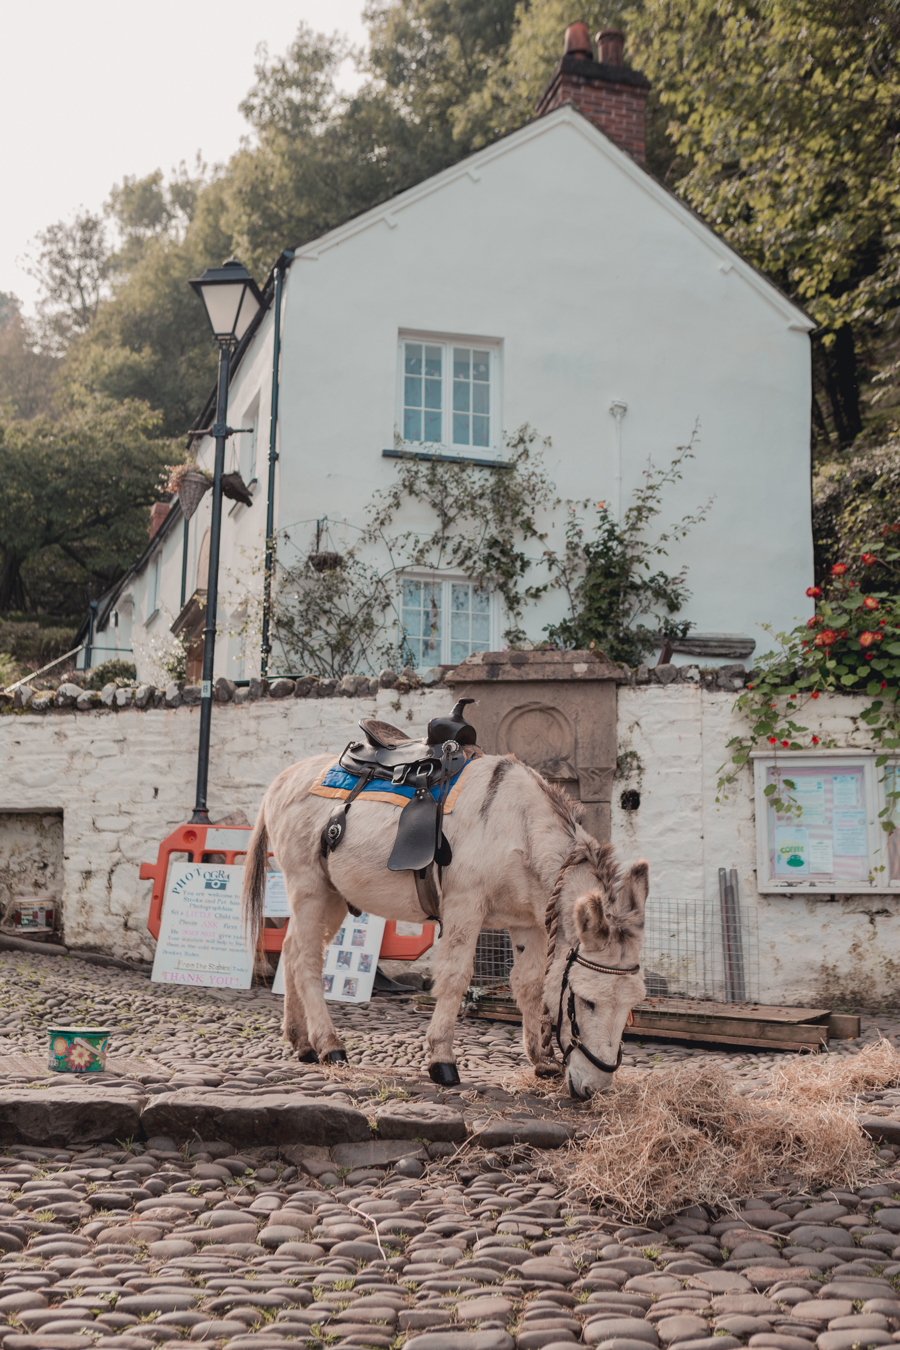 Donkeys in Clovelly, North Devon